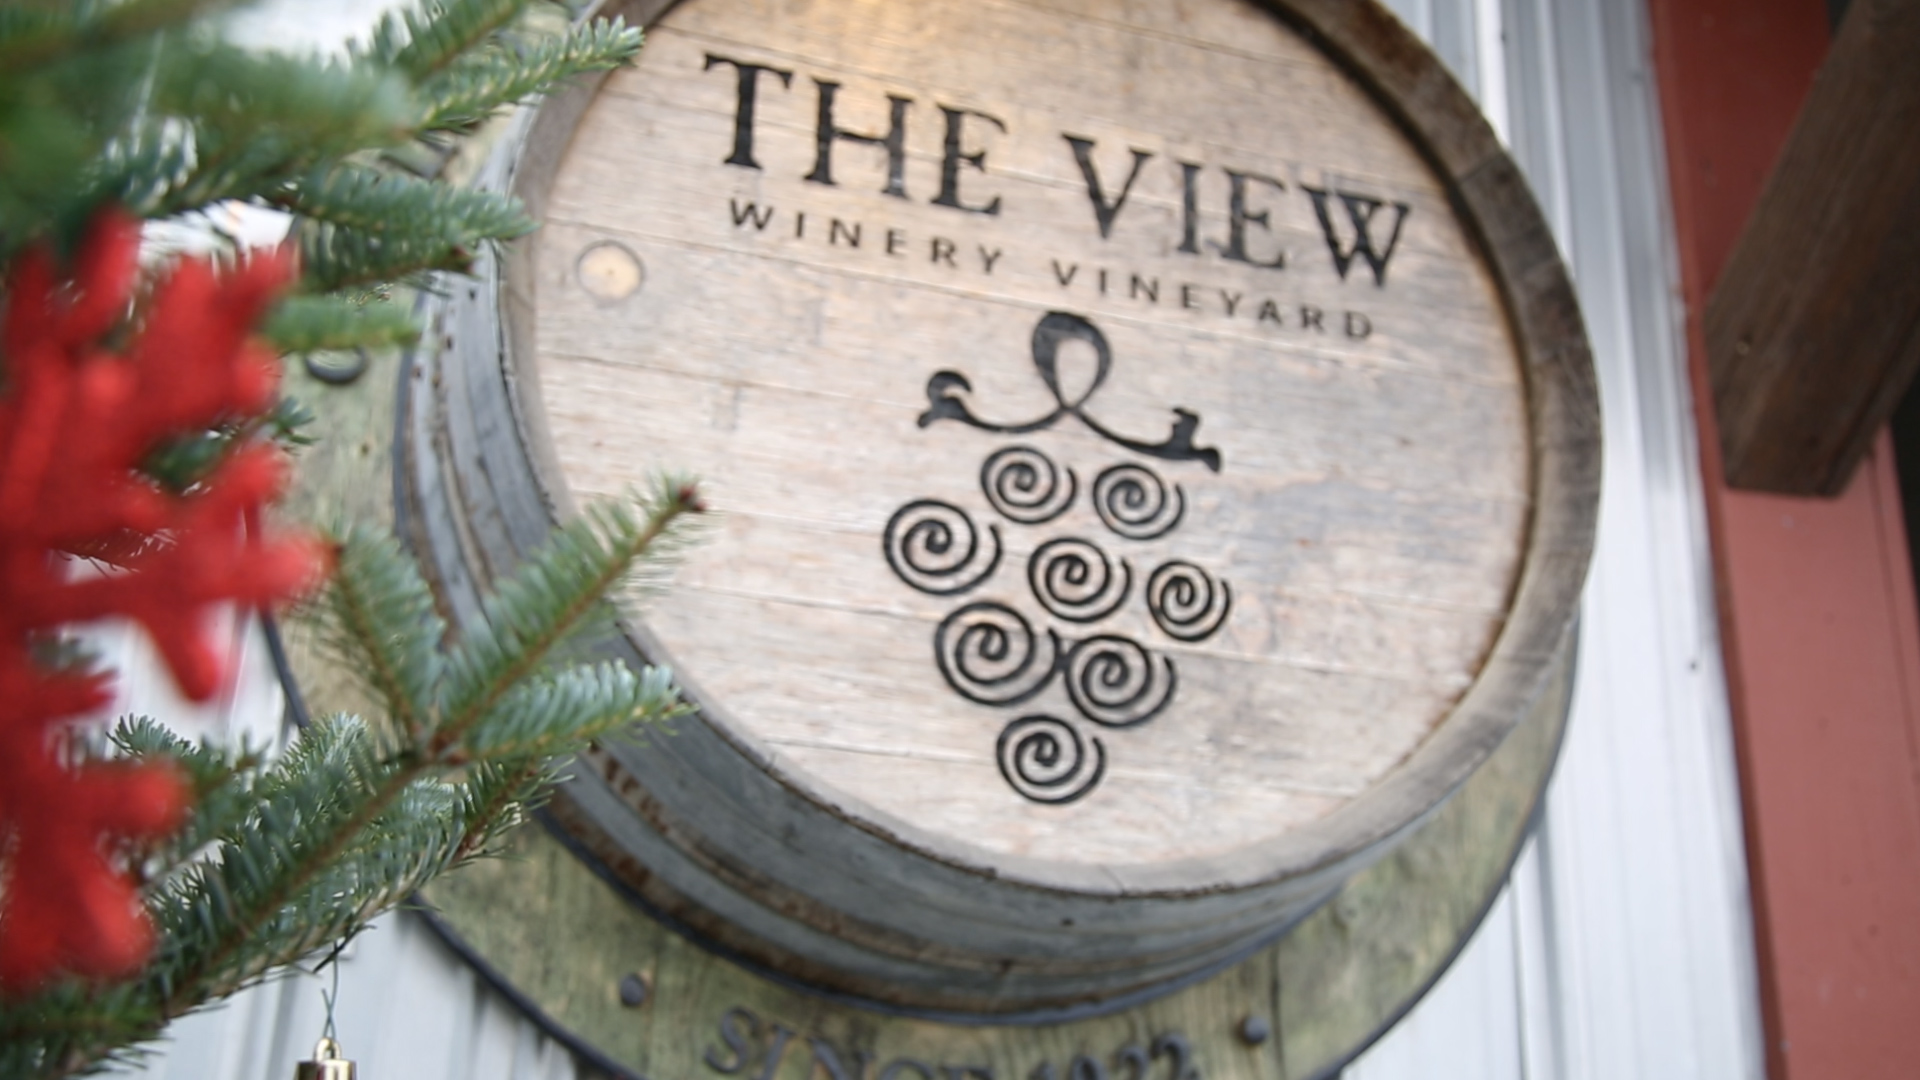 Video: The View Winery To Turn Into A Winter Wineland This Weekend photo